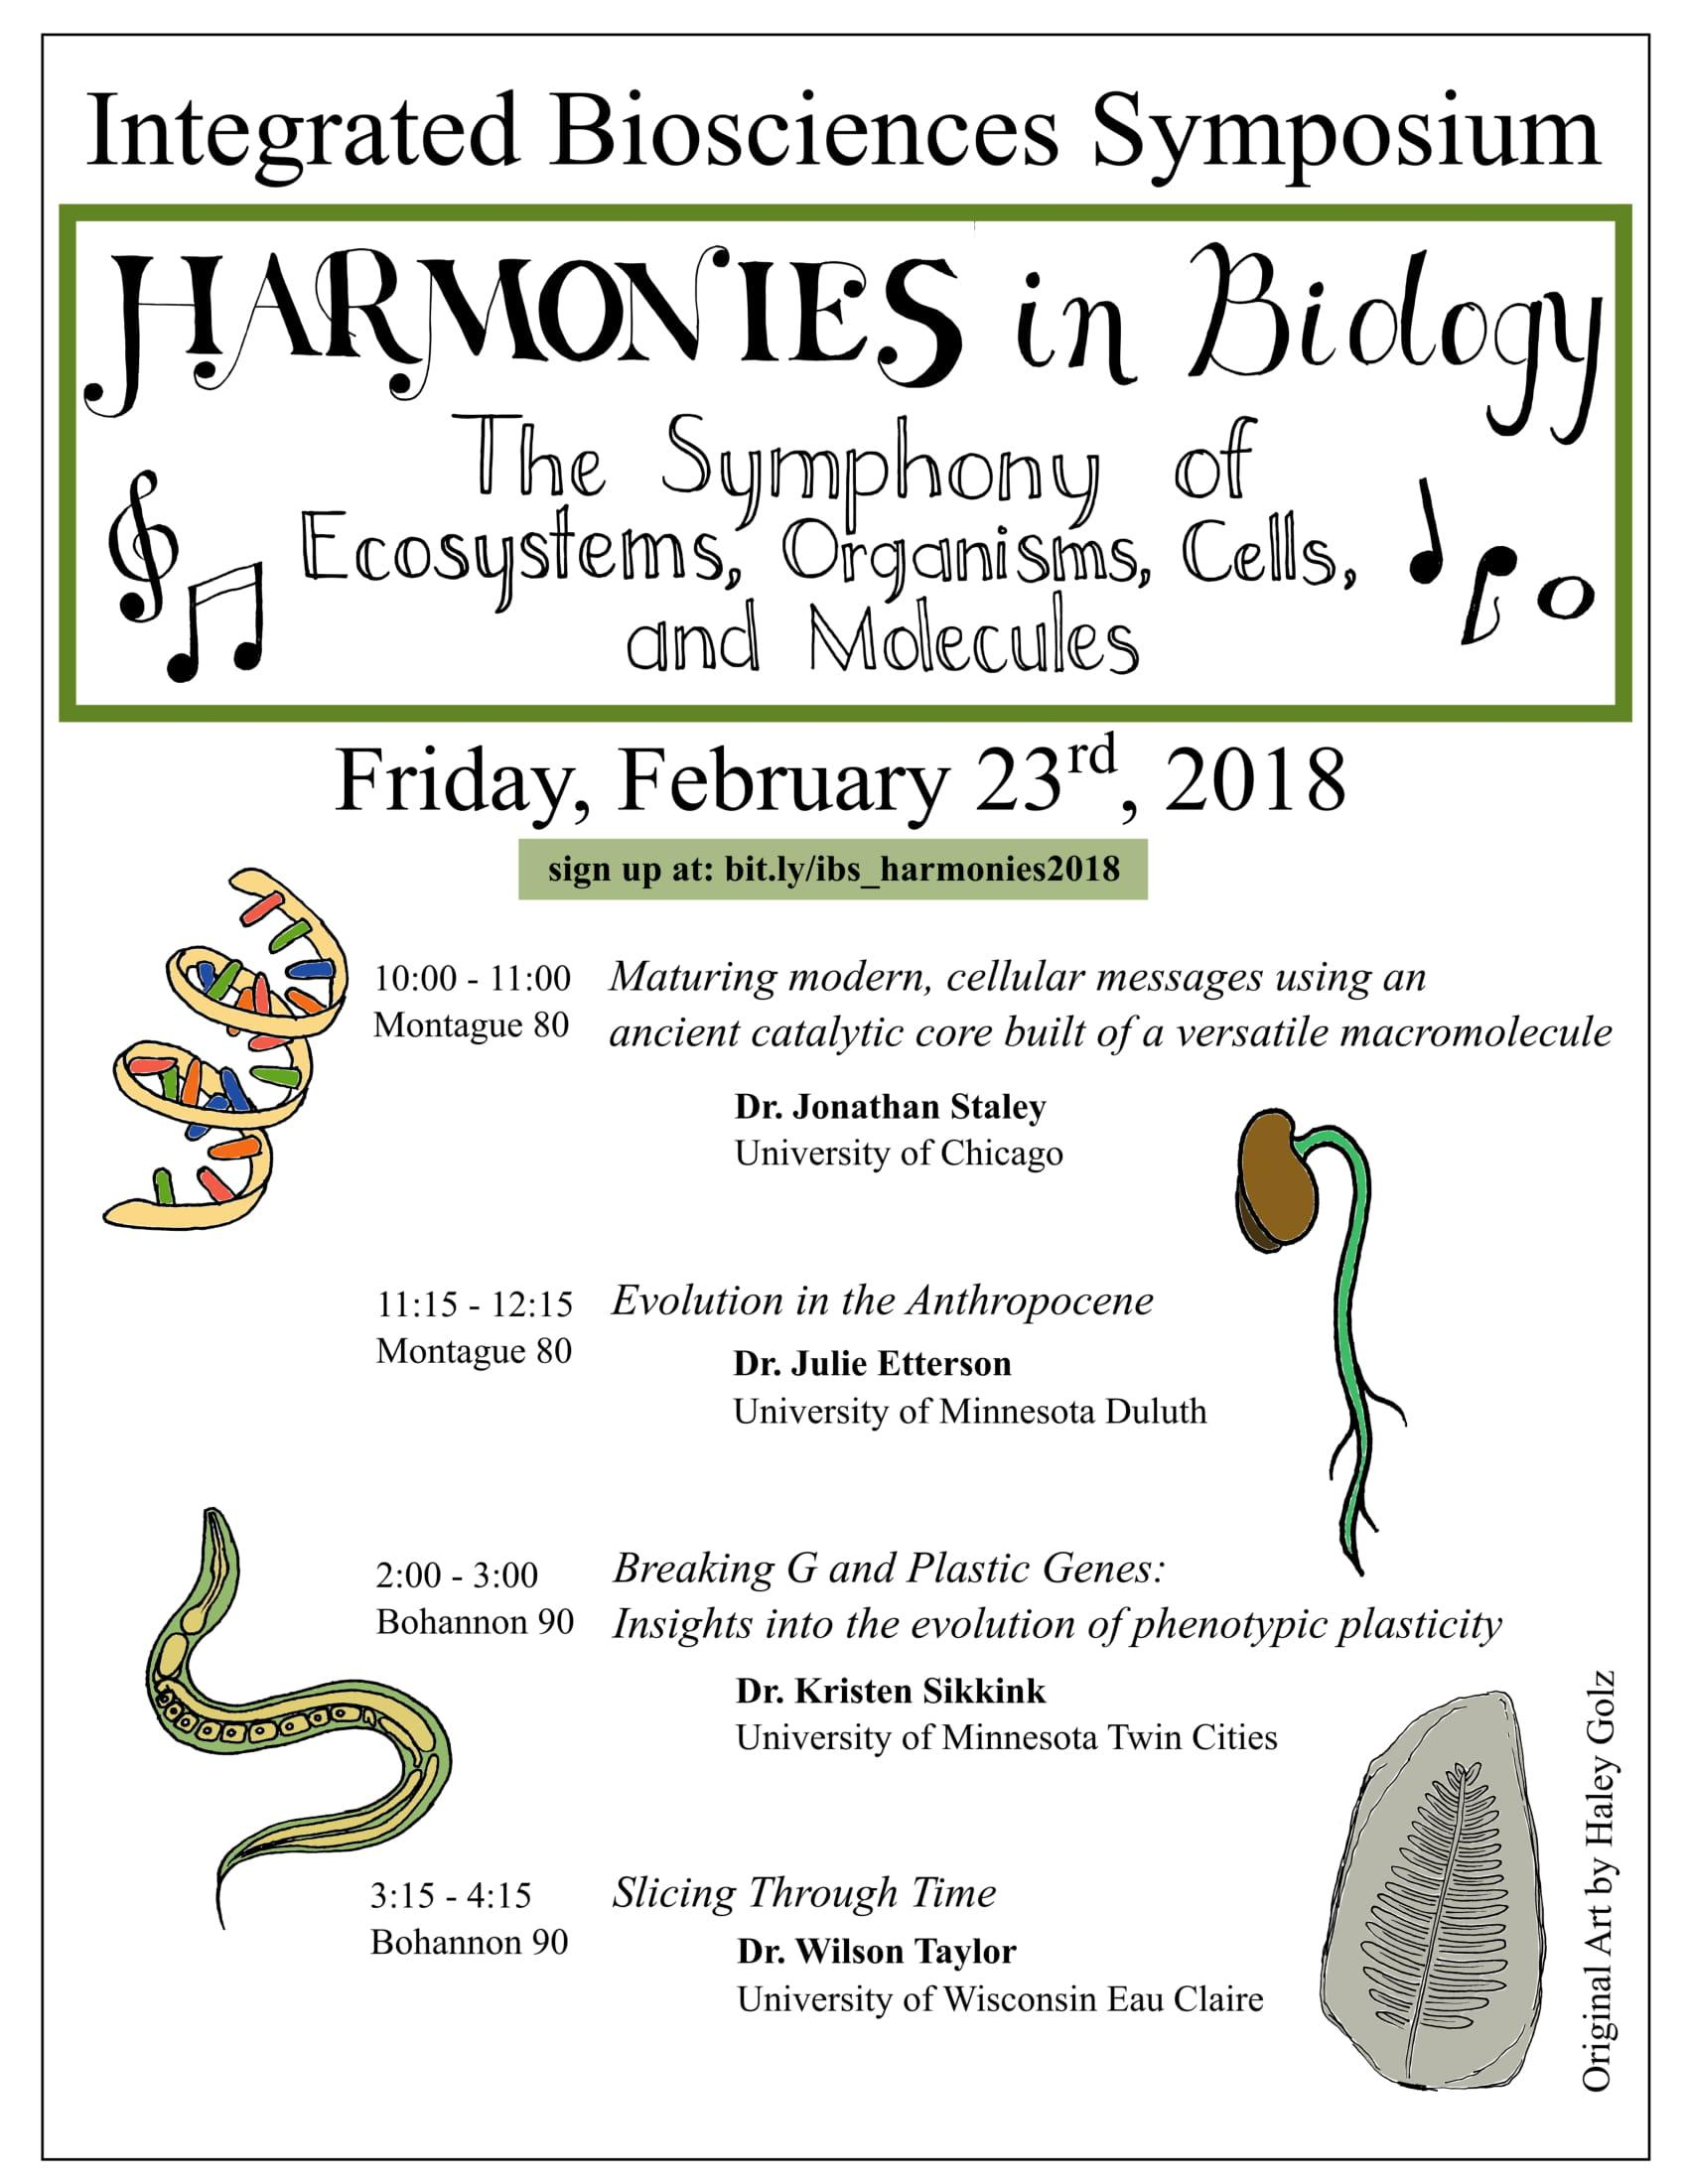 harmonies in biology symposium